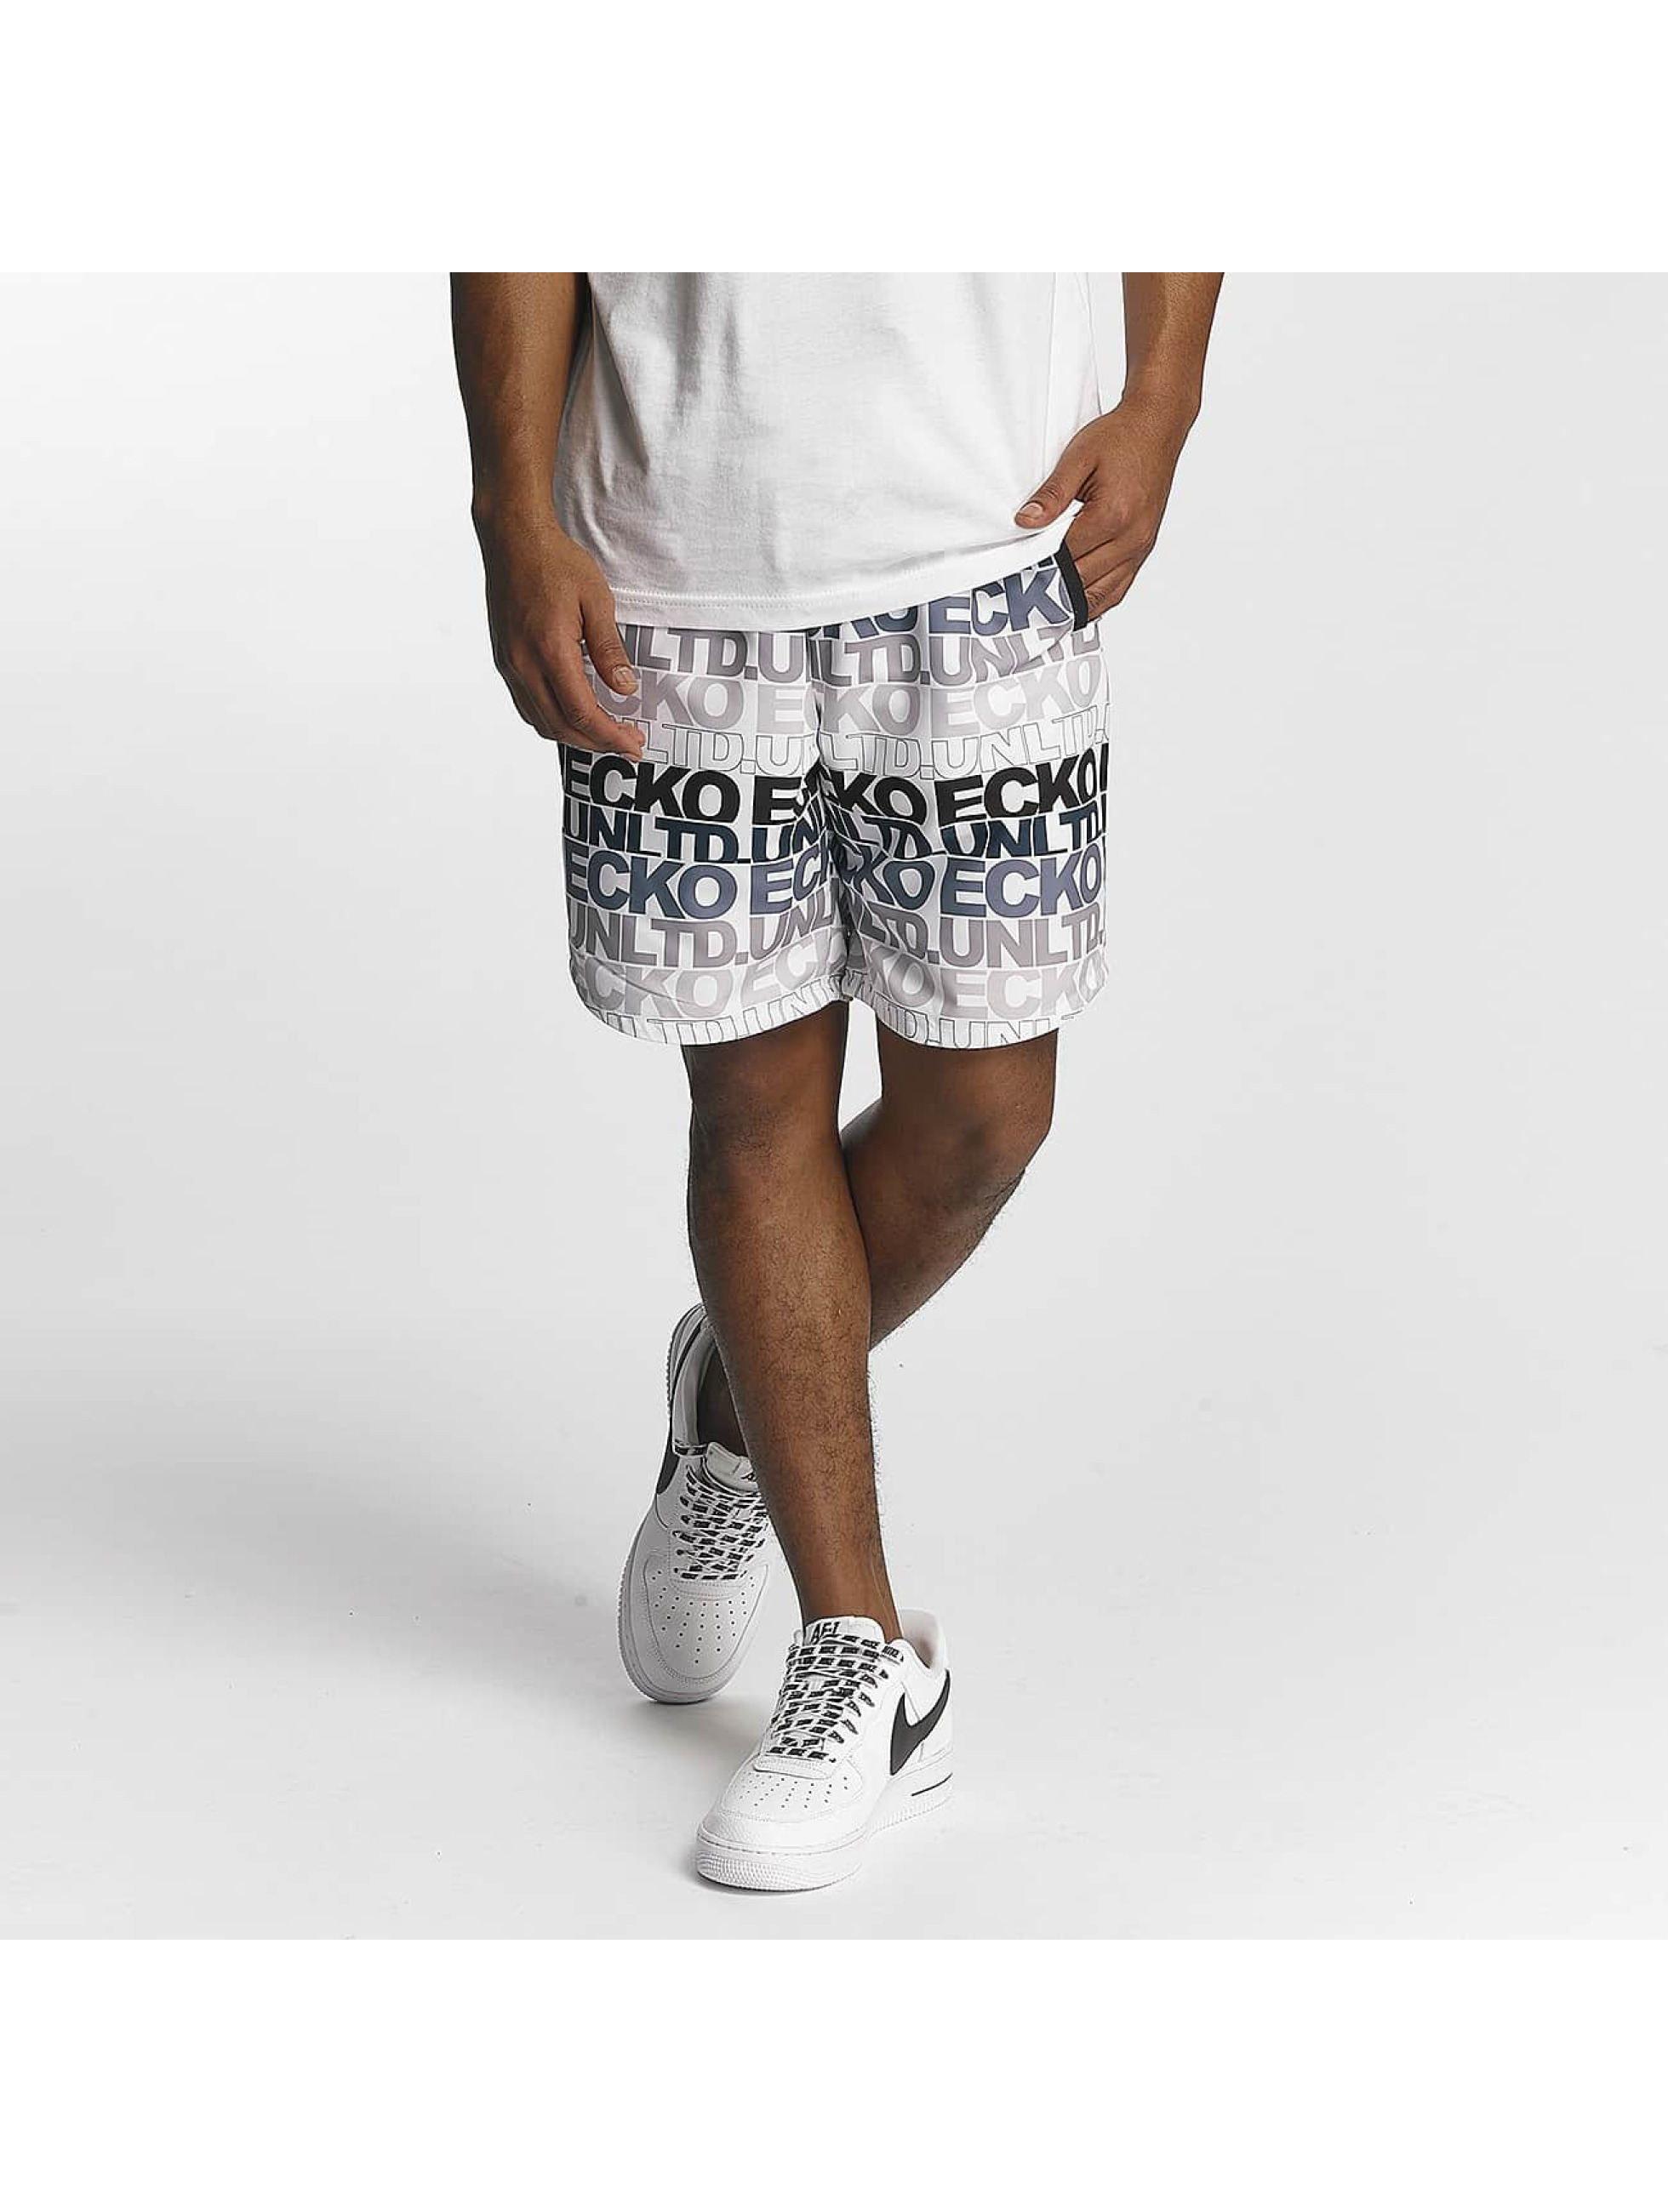 Ecko Unltd. / Short TroudÀrgent in grey M